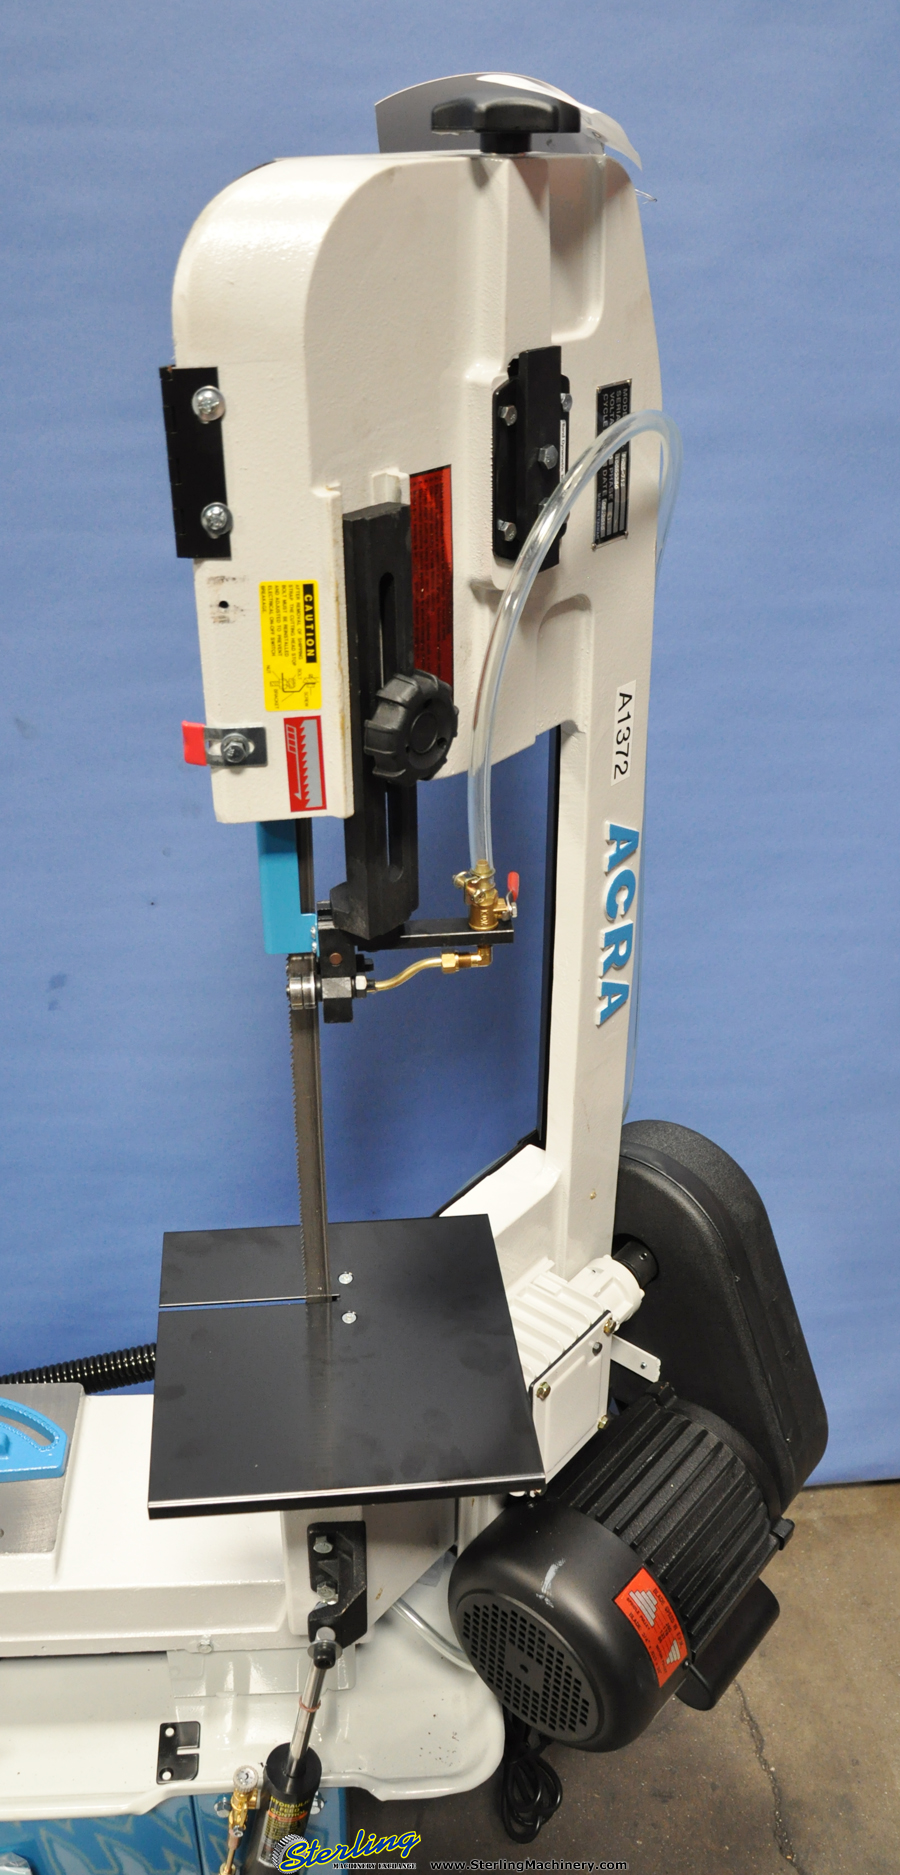 Brand New Acra Horizontal Vertical Band Saw Sterling Machinery